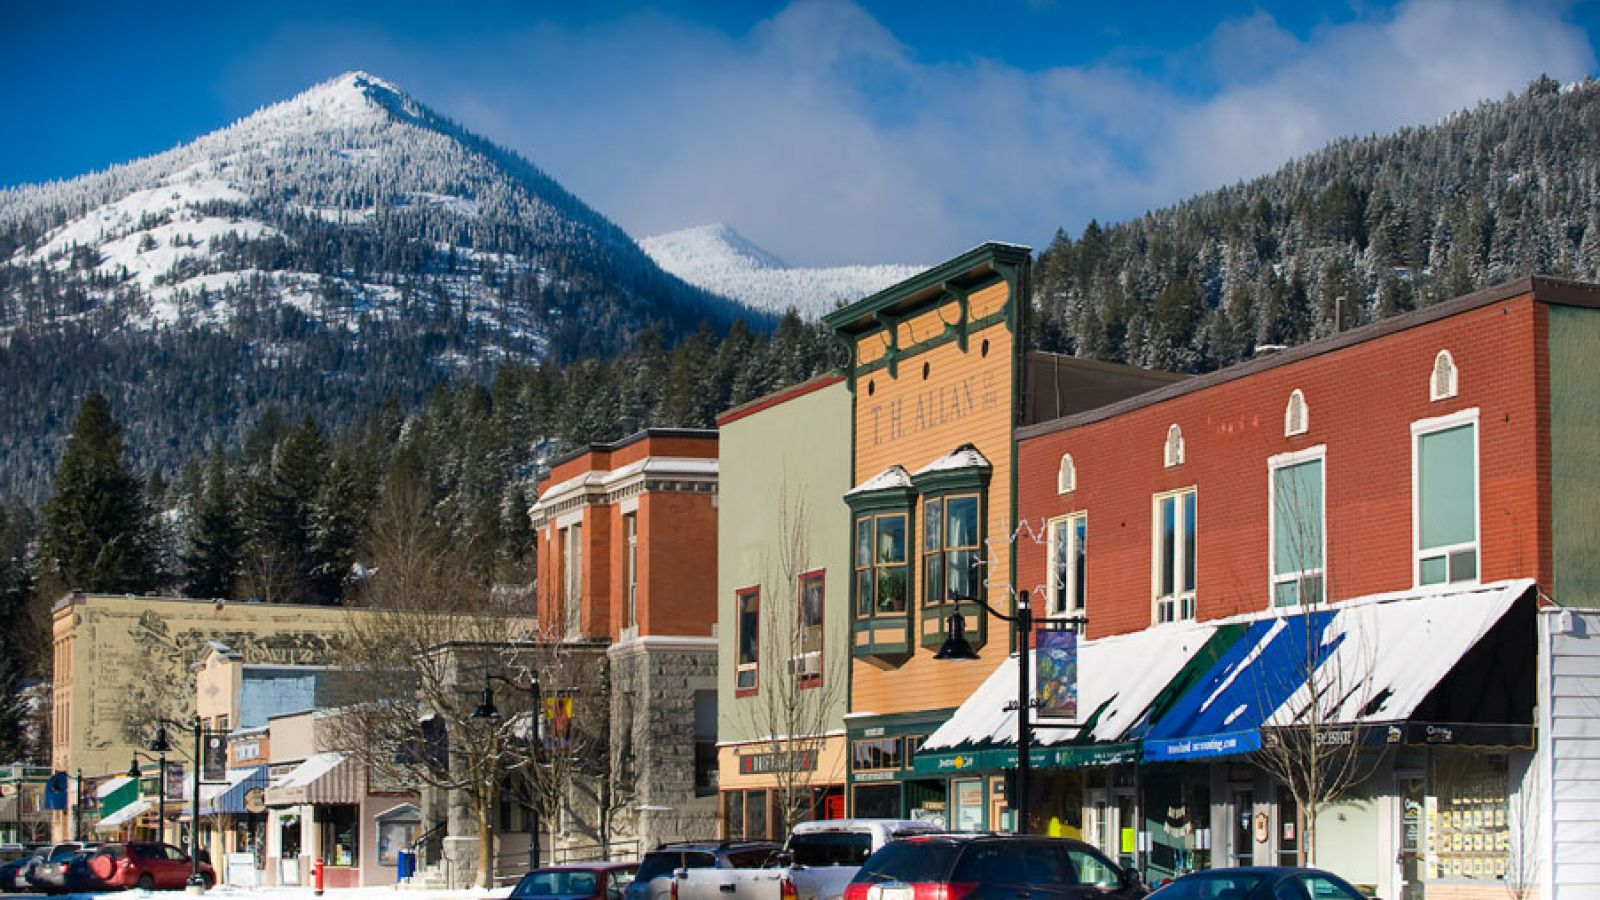 Heritage downtown Rossland in the winter.